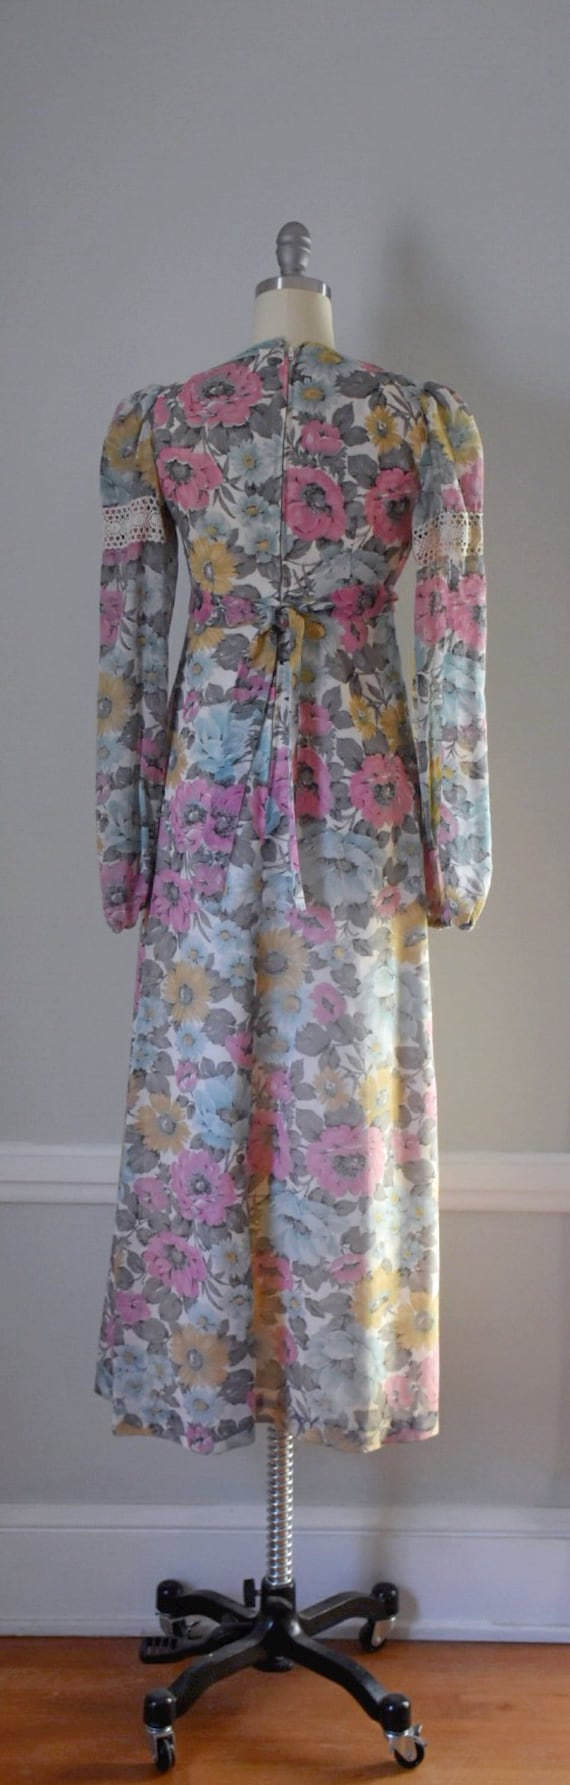 Vintage 70s Prairie Dress - image 6